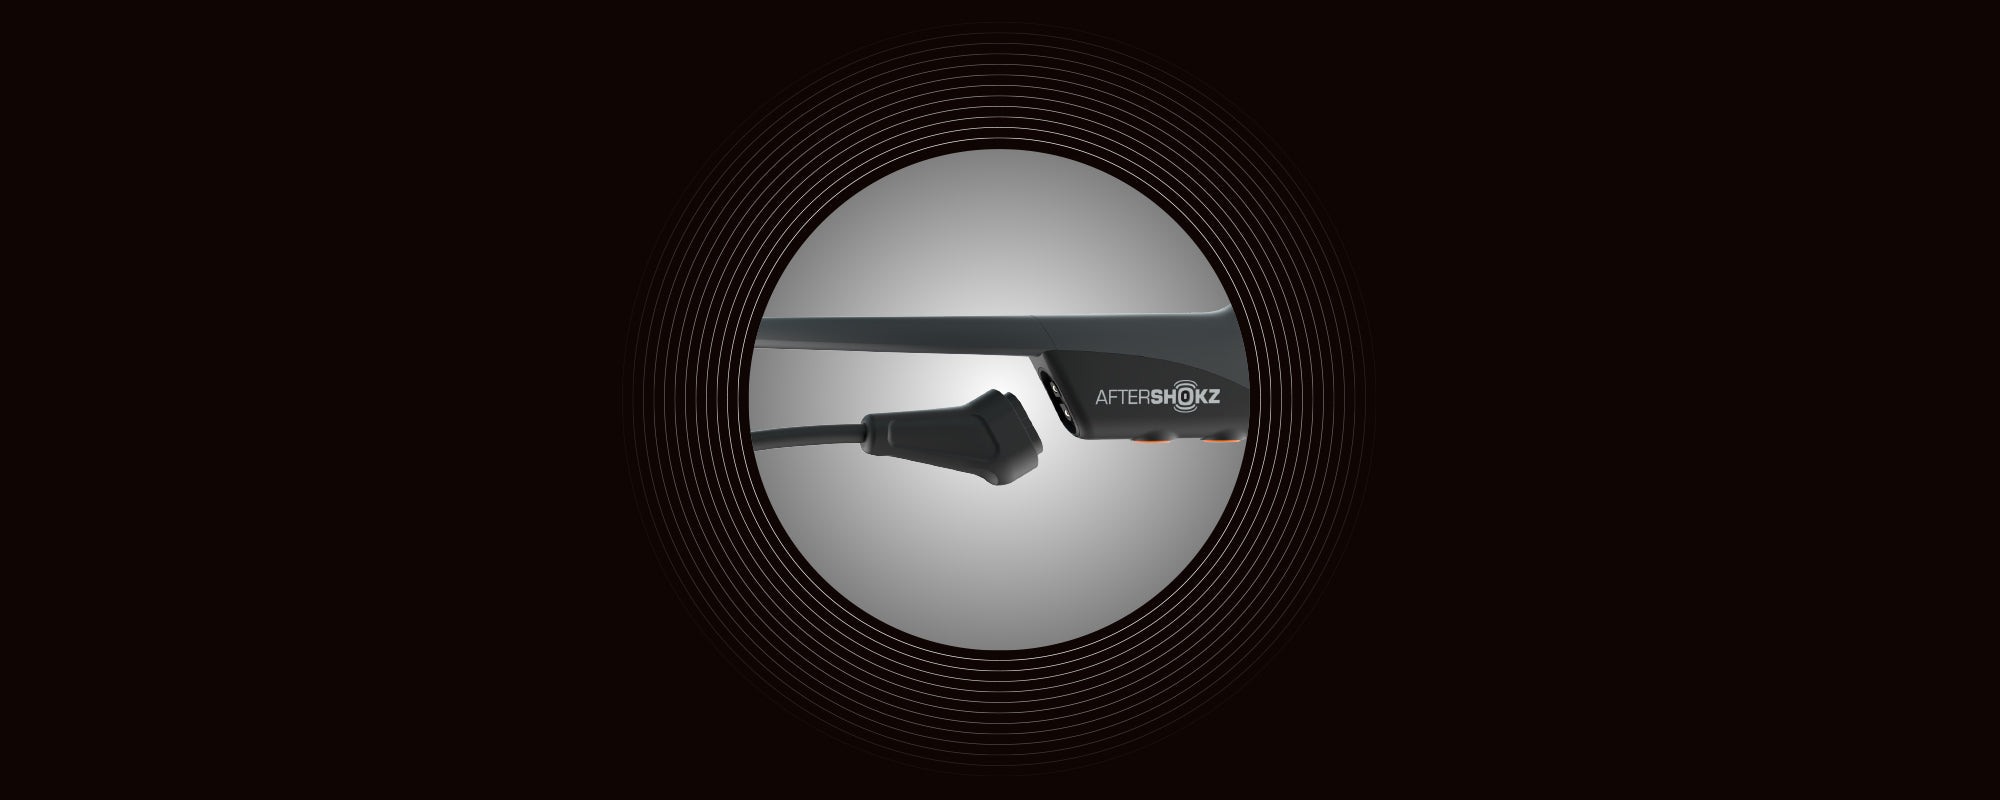 Image of a Magnetic Induction charging port on AfterShokz Aeropex headphones